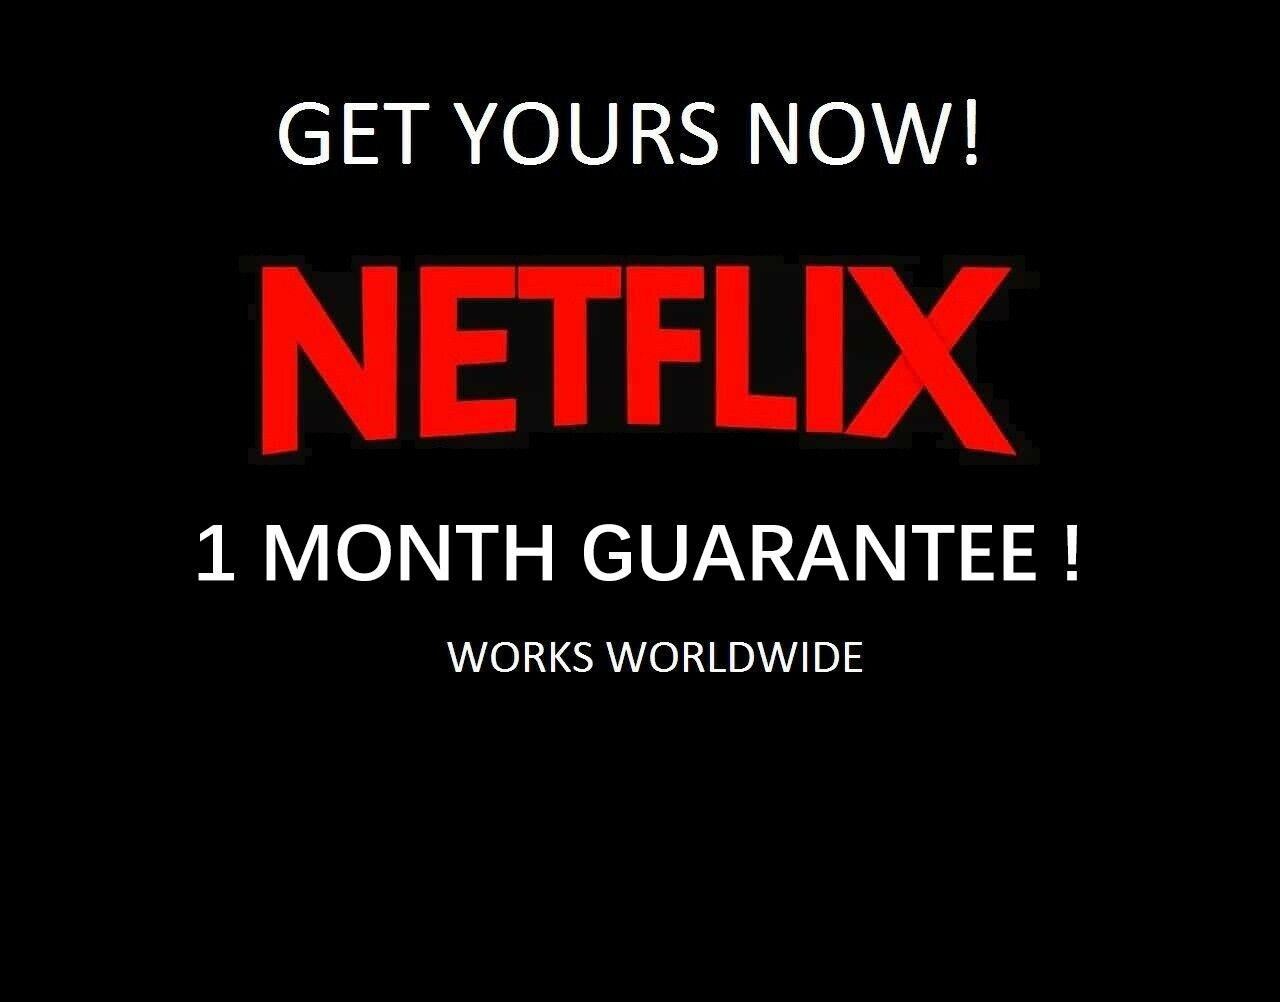 Netflix Account for Netflix Subscription Original 4K Premium Netflix Acc for 4 Screen can used in IOS Android and PC